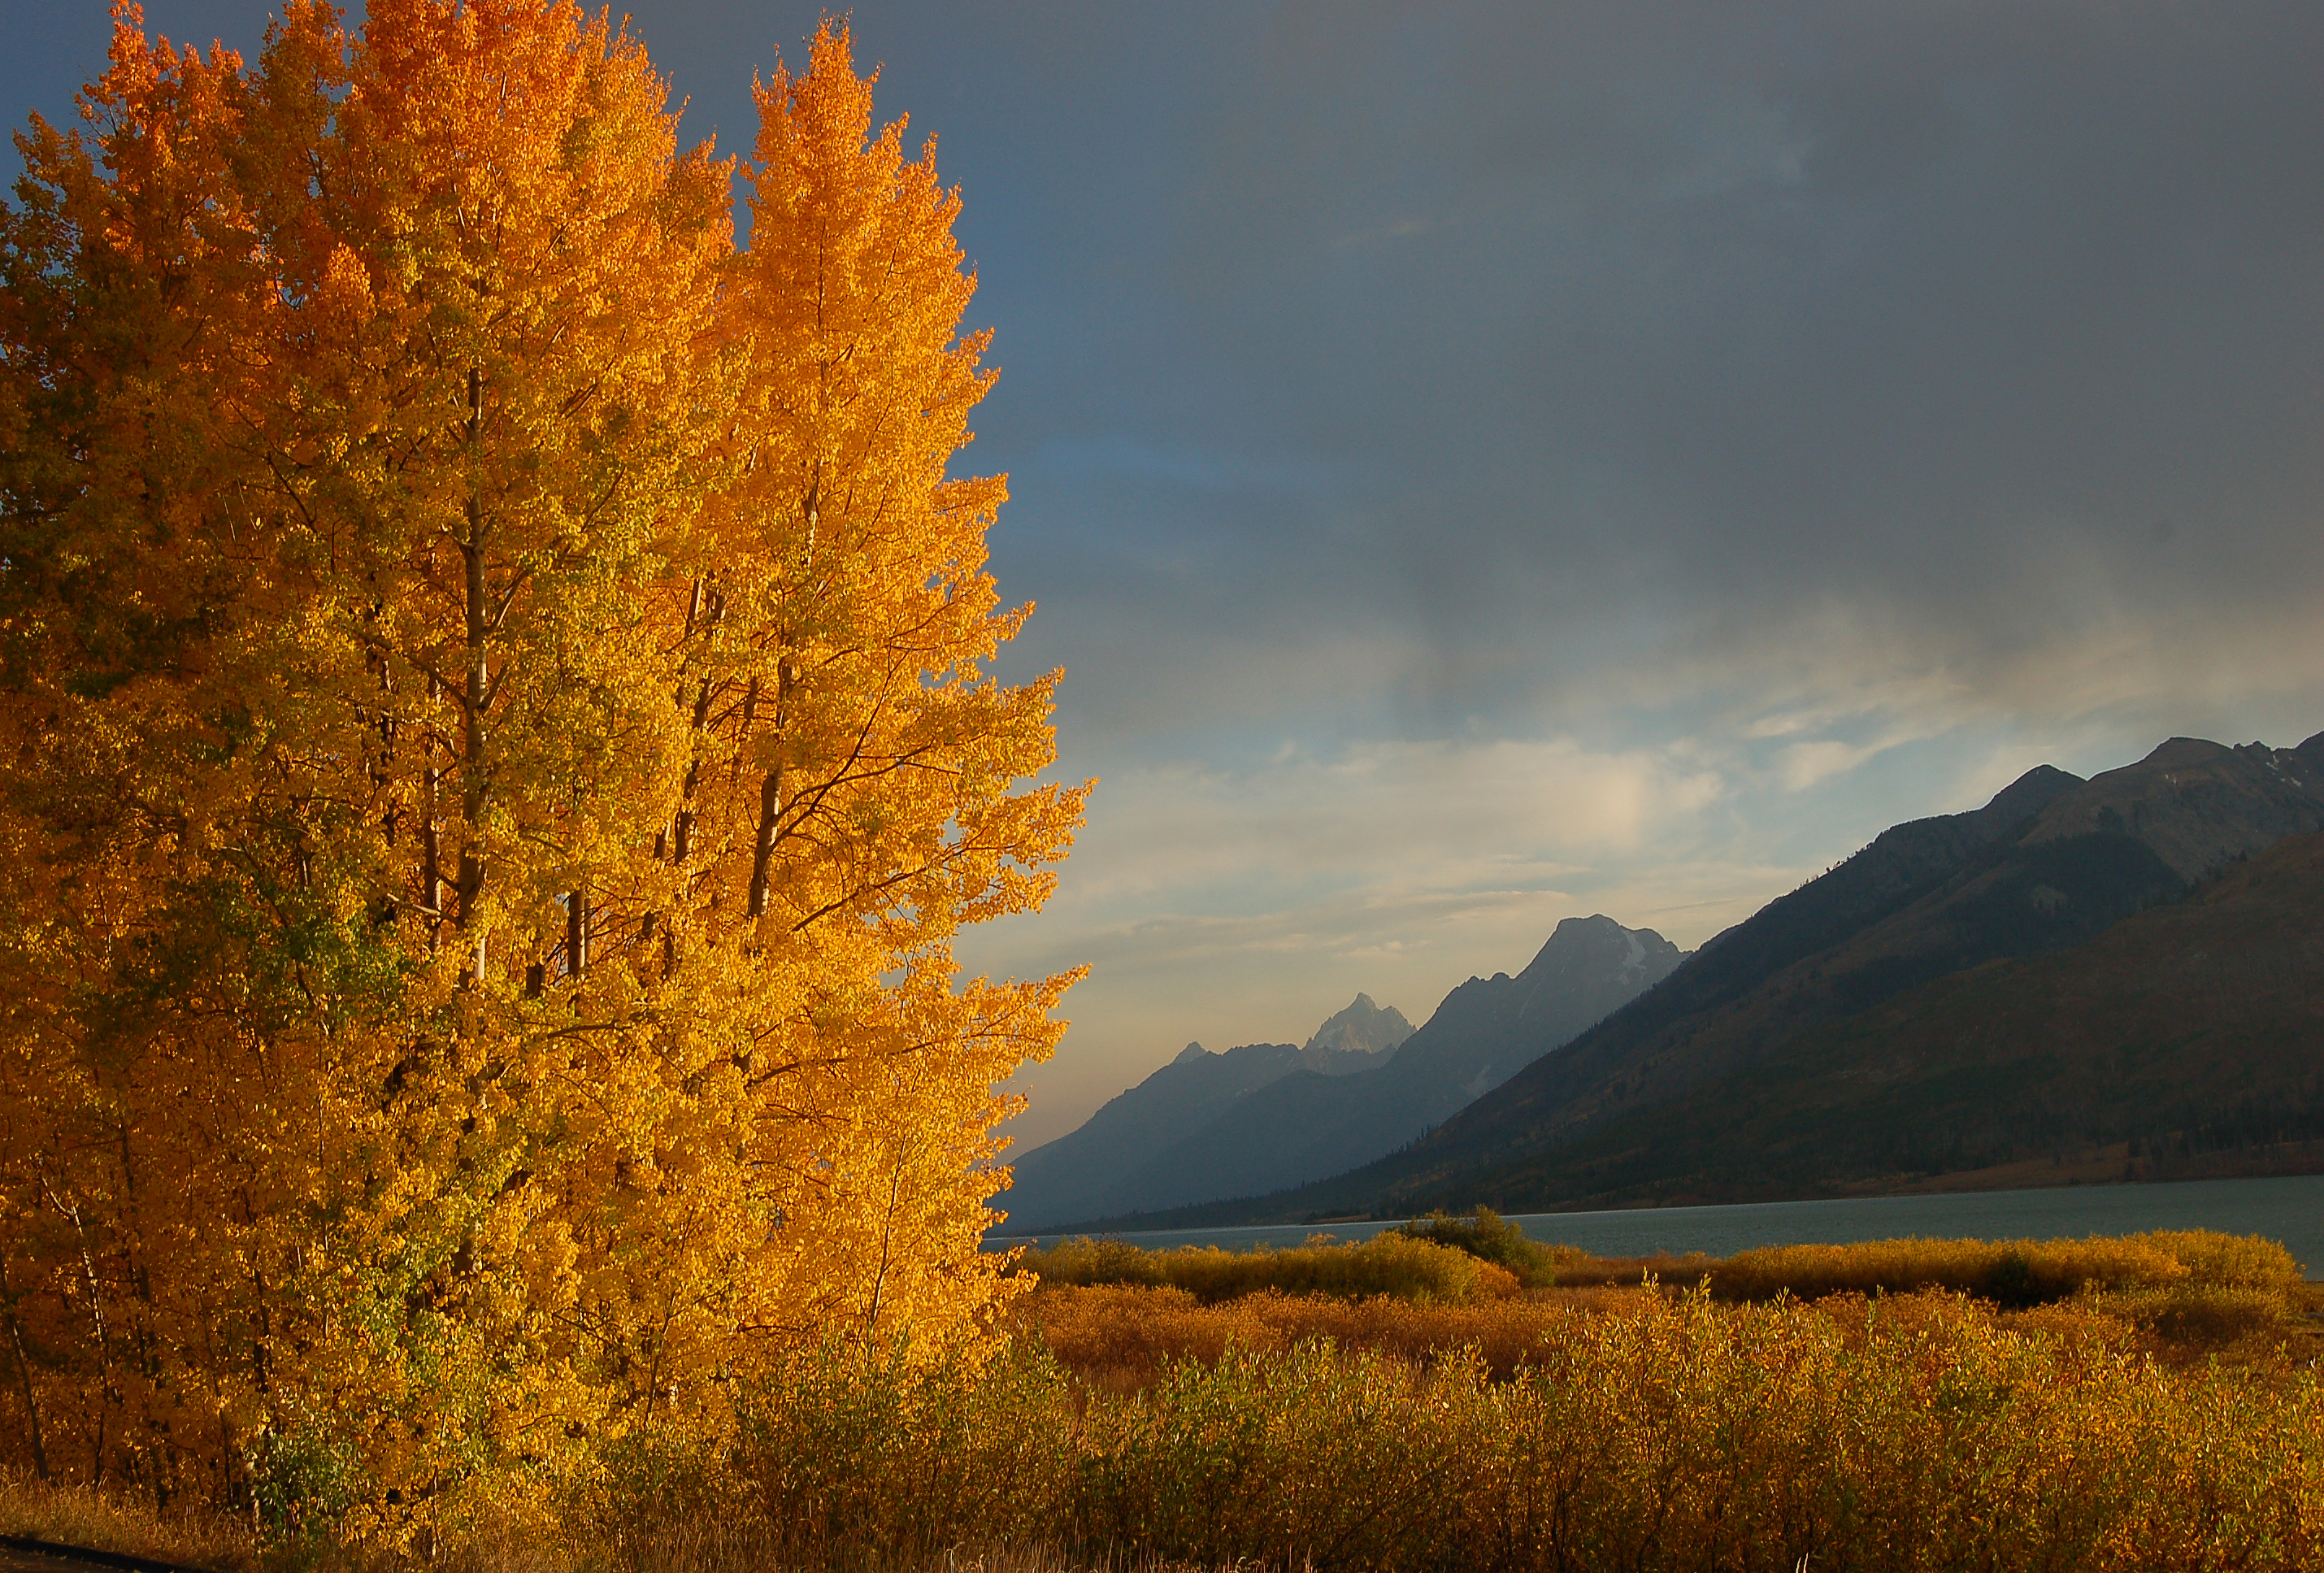 I shot this pic in the Grand Tetons. We just came around a corner right as the sun was setting, and the Aspens were in peak color - only had a couple of minutes to get the shot with the sun setting - it is all about the moments!